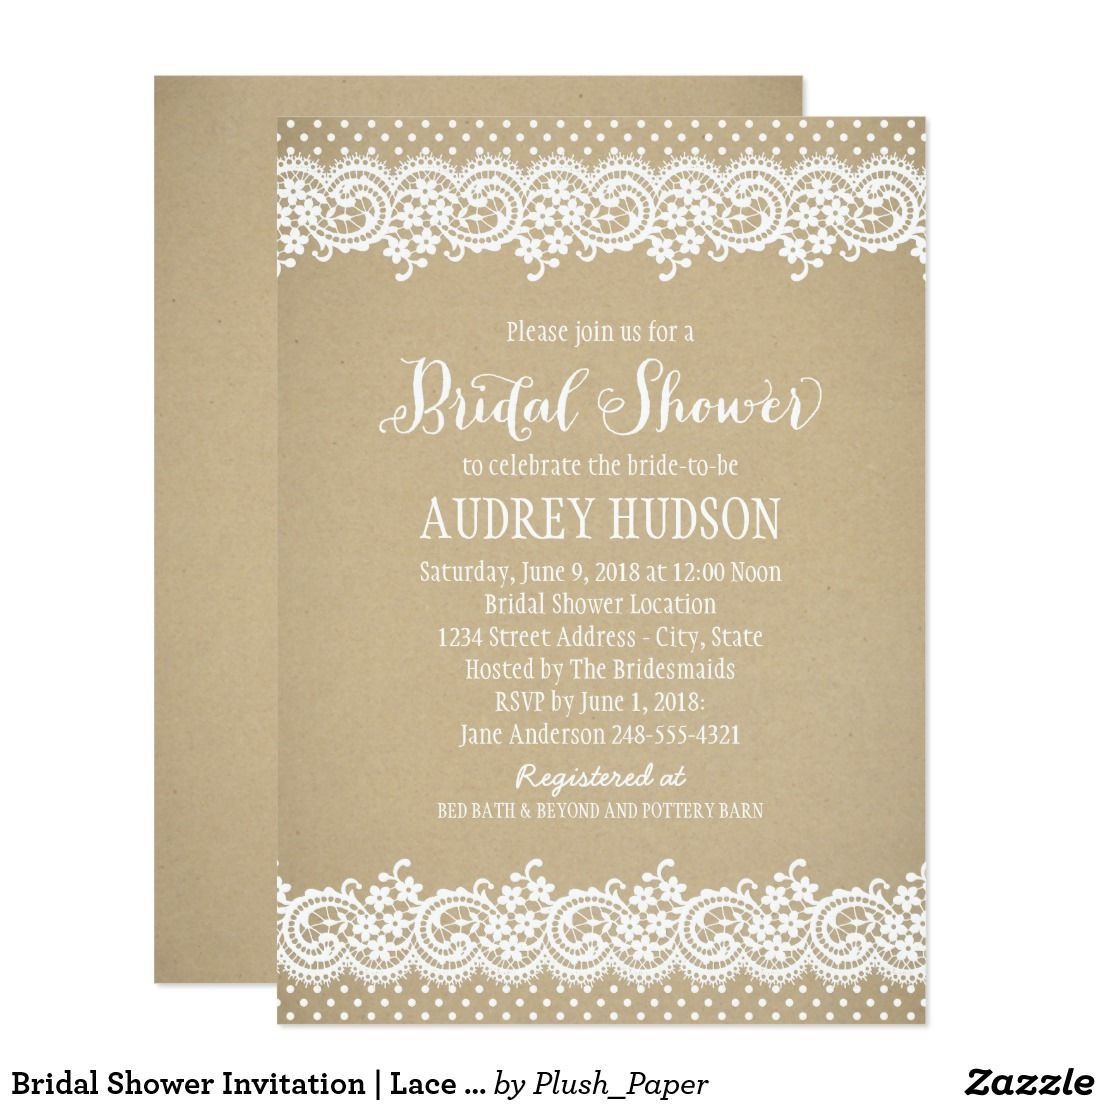 Bridal Shower Invitation | Lace and Kraft | Shower invitations ...